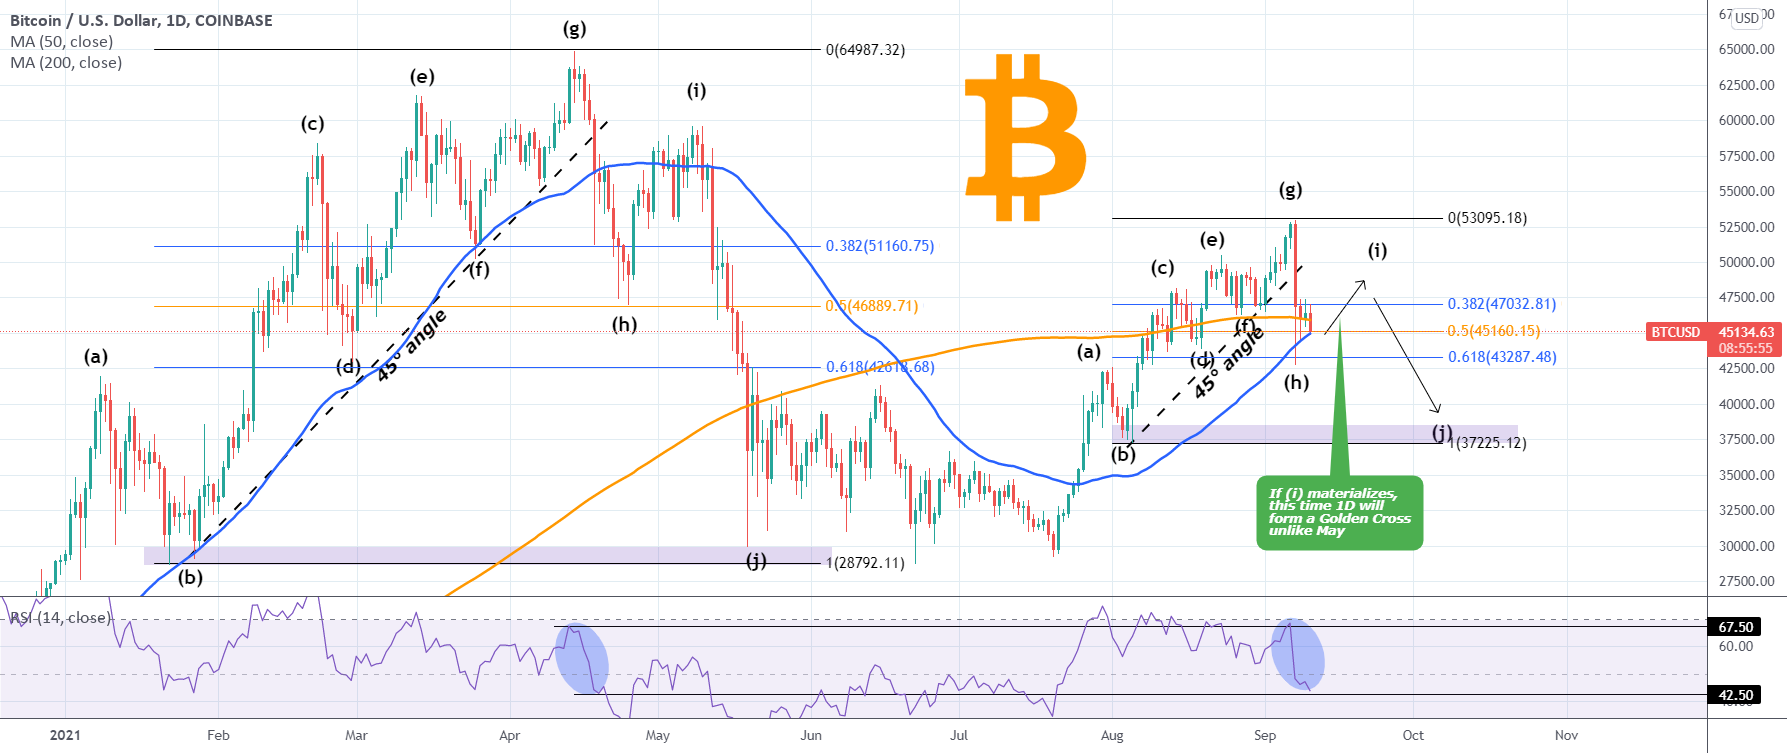 BITCOIN Is it realistic to expect a repeat of this fractal?